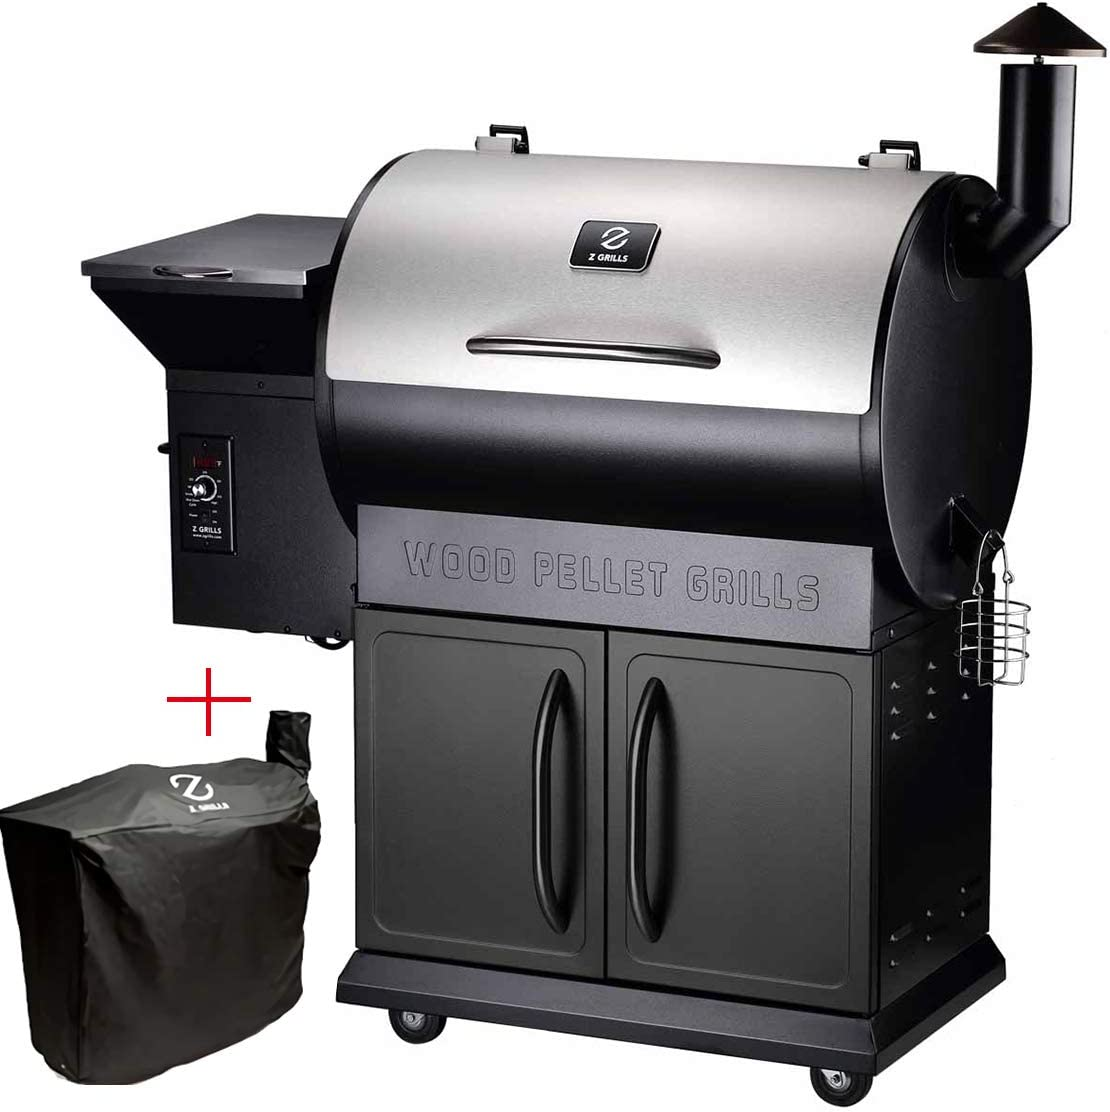 Z GRILLS ZPG-700E 2020 New Model Wood Pellet Grill Smoker, Black, Free Grill Cover